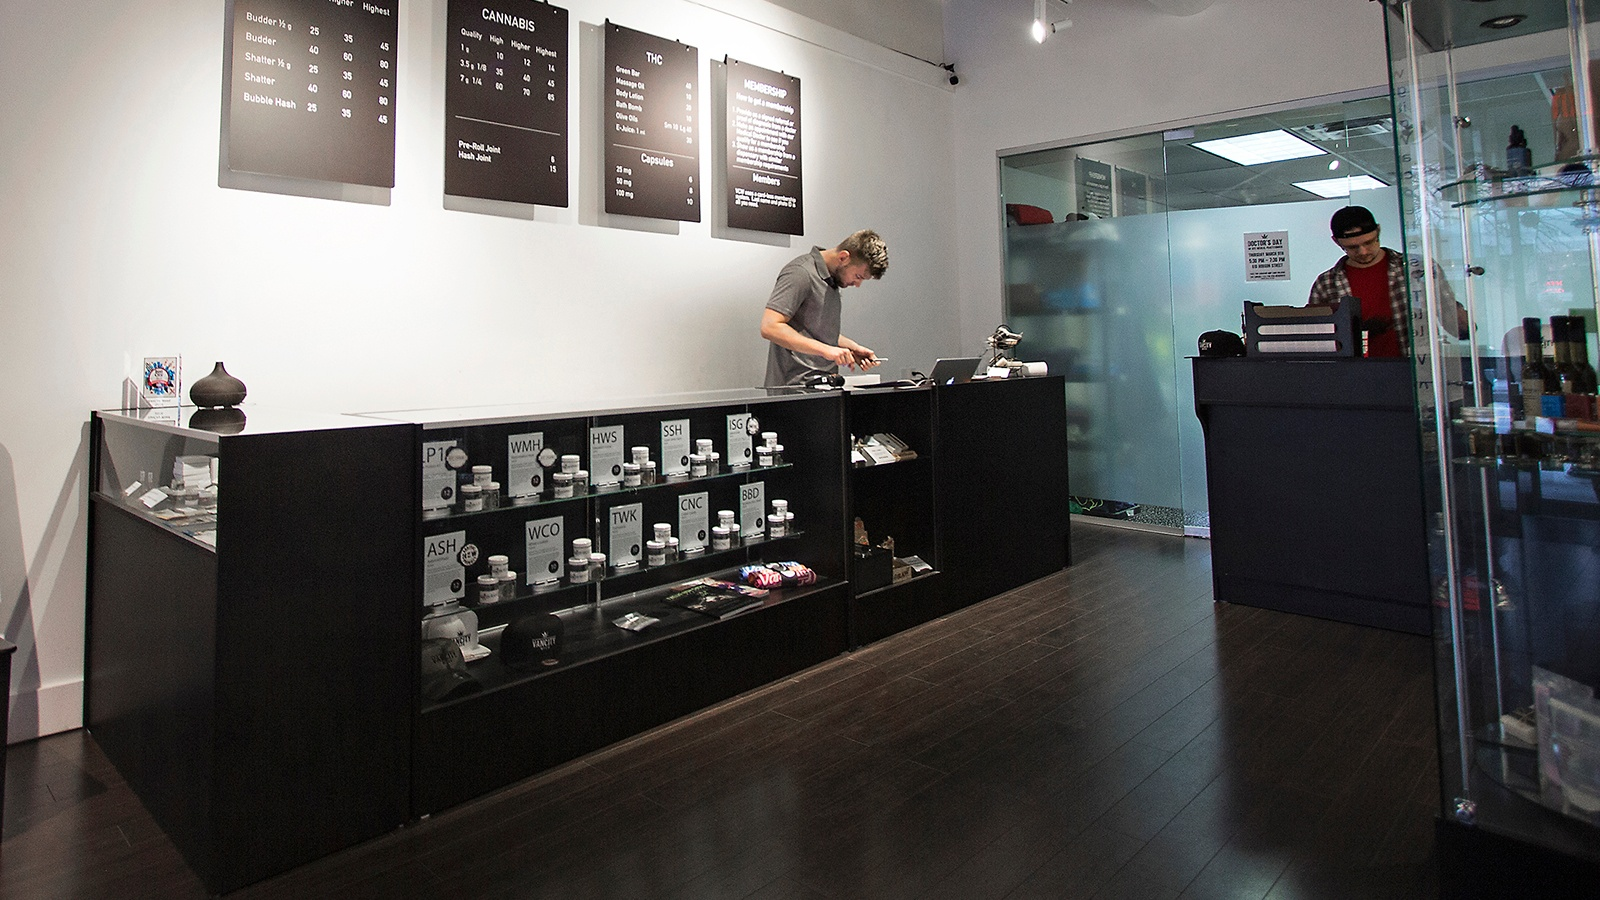 How-to-Grow-Your-Cannabis-Retail-Operation-with-Limited-Space.jpg